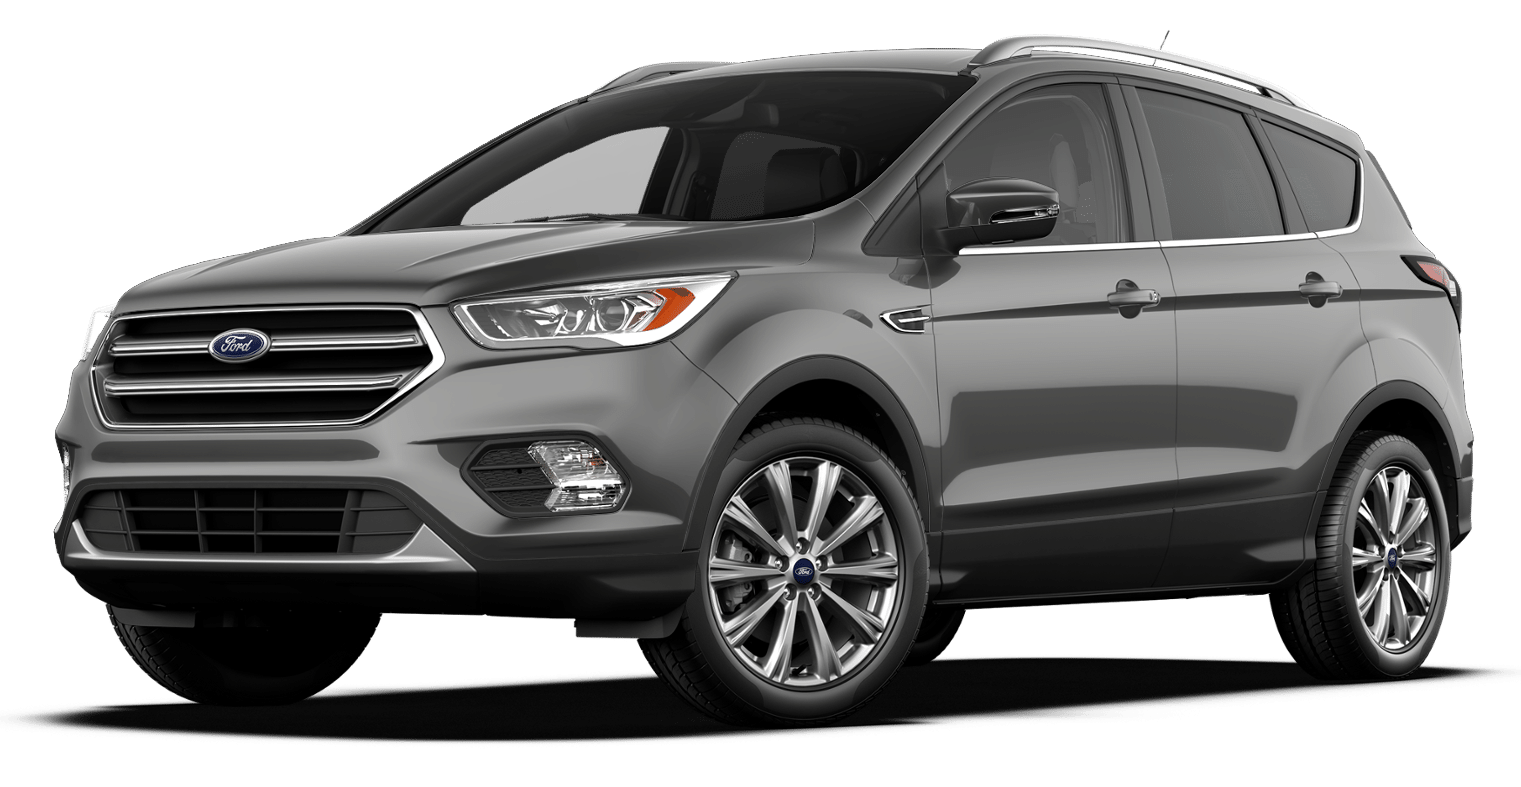 Ford Escape Titanium >> 2017 Ford Escape 2.5L S Price in UAE, Specs & Review in Dubai, Abu Dhabi, Sharjah - CarPrices.ae